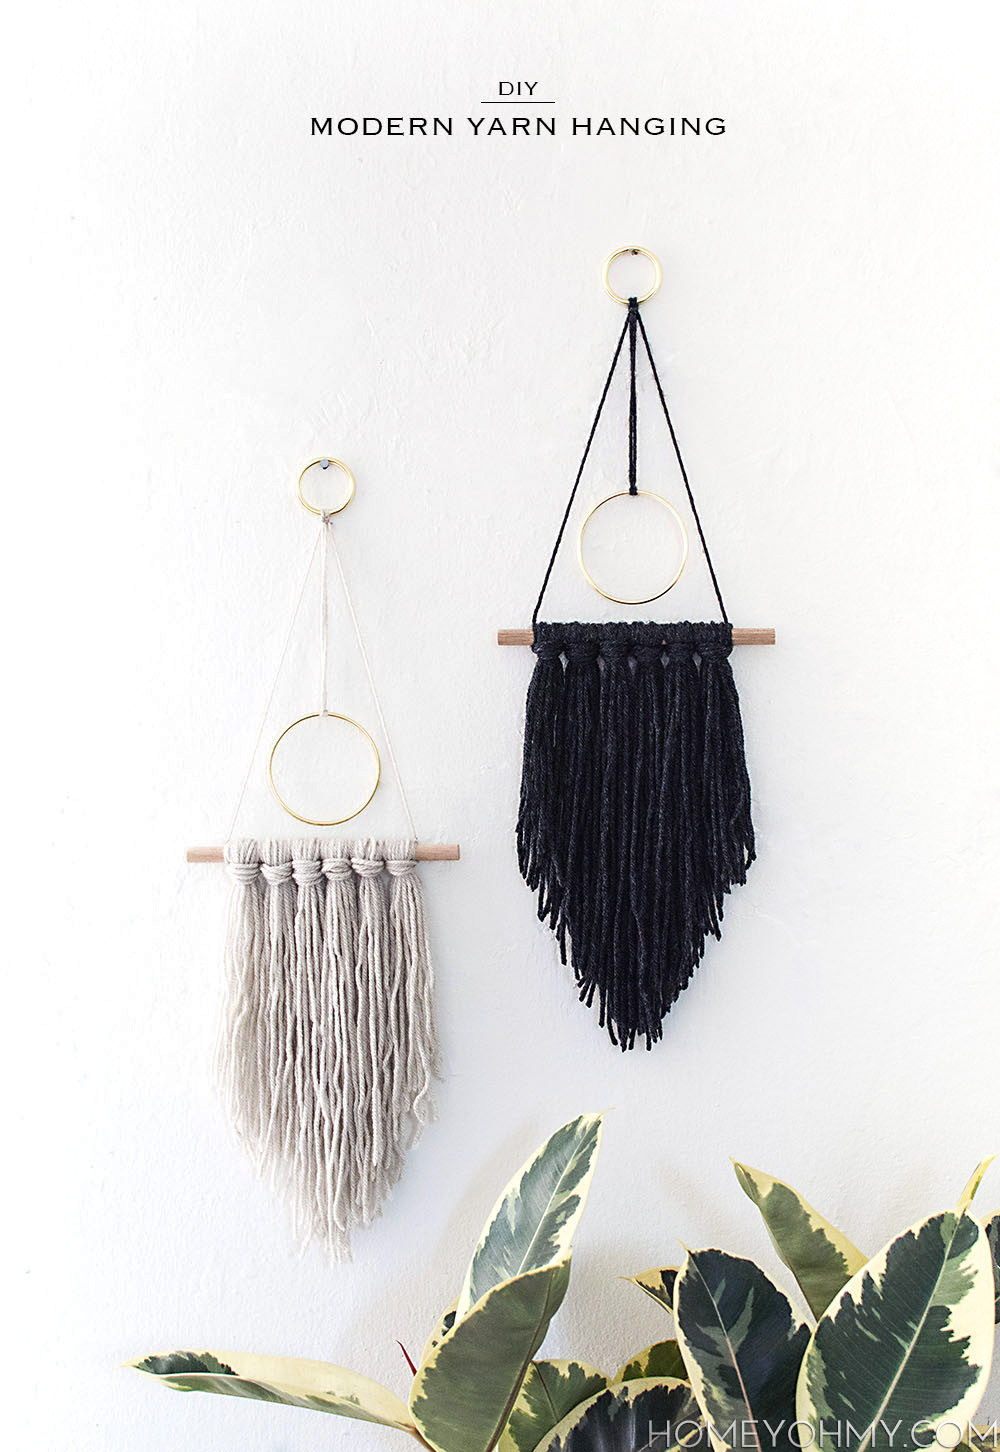 Design Hanging Photos diy modern yarn hanging homey oh my hanging